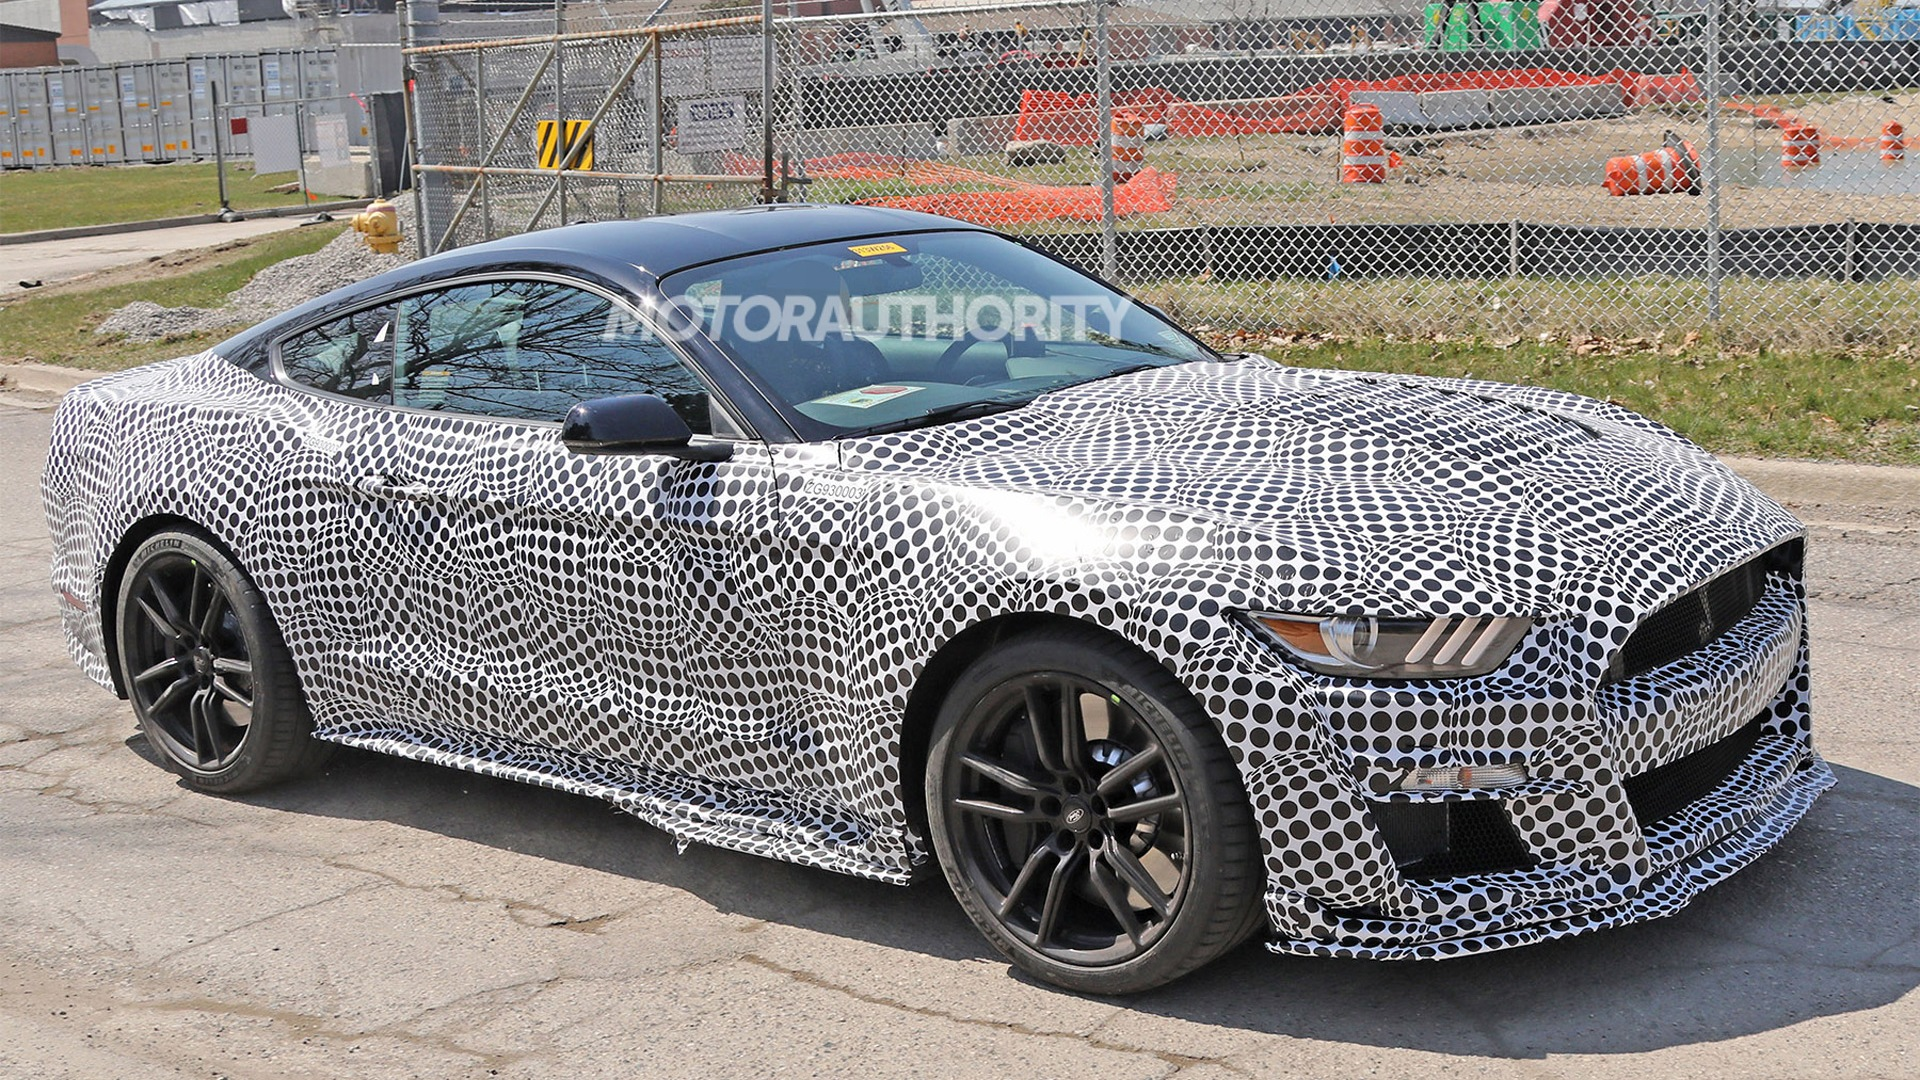 62 All New Spy Shots Ford Mustang Svt Gt 500 Style